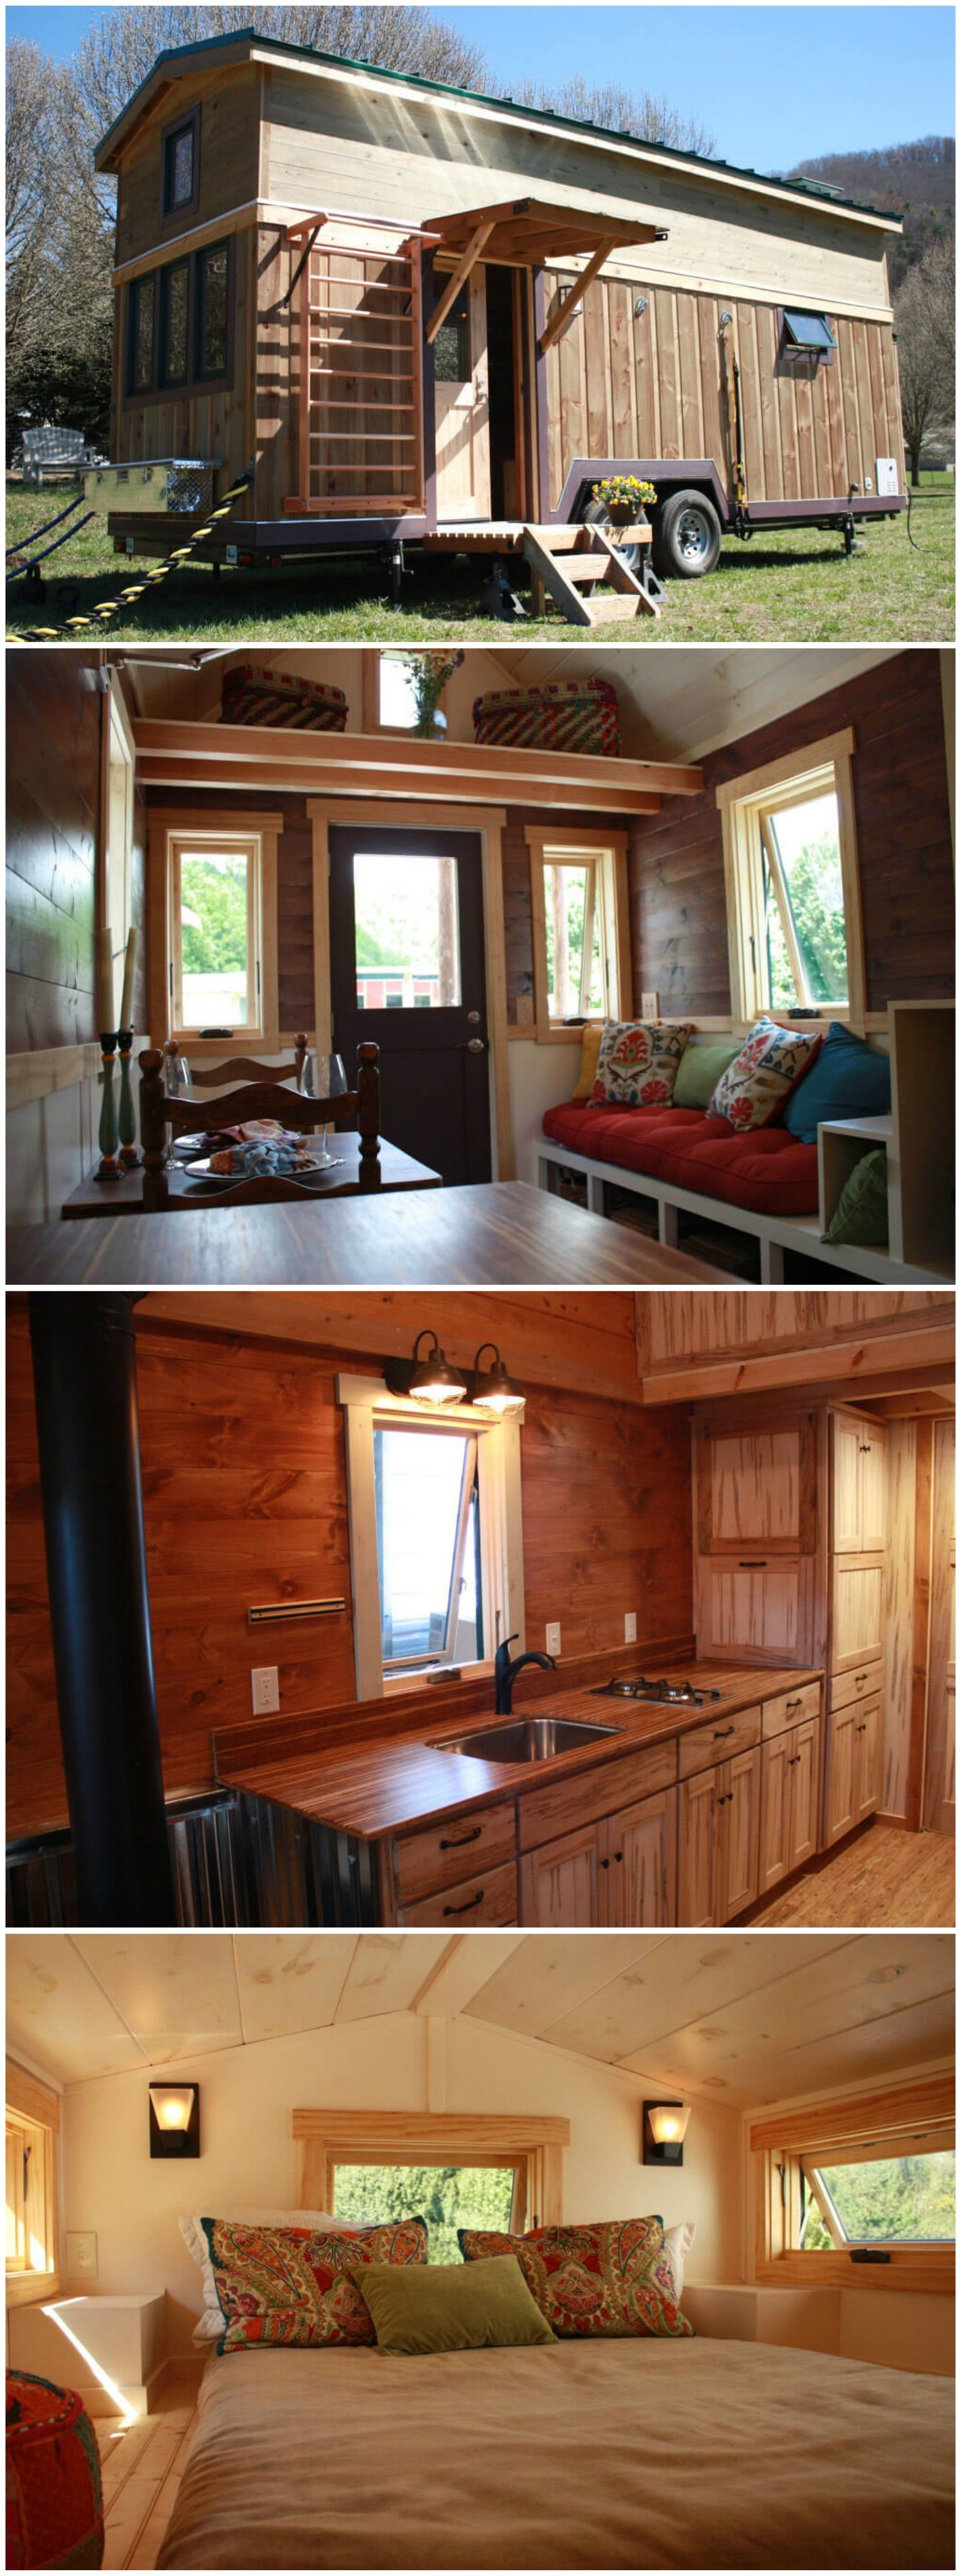 Fitness Nest Is A Gorgeous Tiny House Built By Blue Ridge Tiny Homes The Fitness Nest By Blue Ridge Tiny Ho Tiny House Tiny House Living Tiny House On Wheels